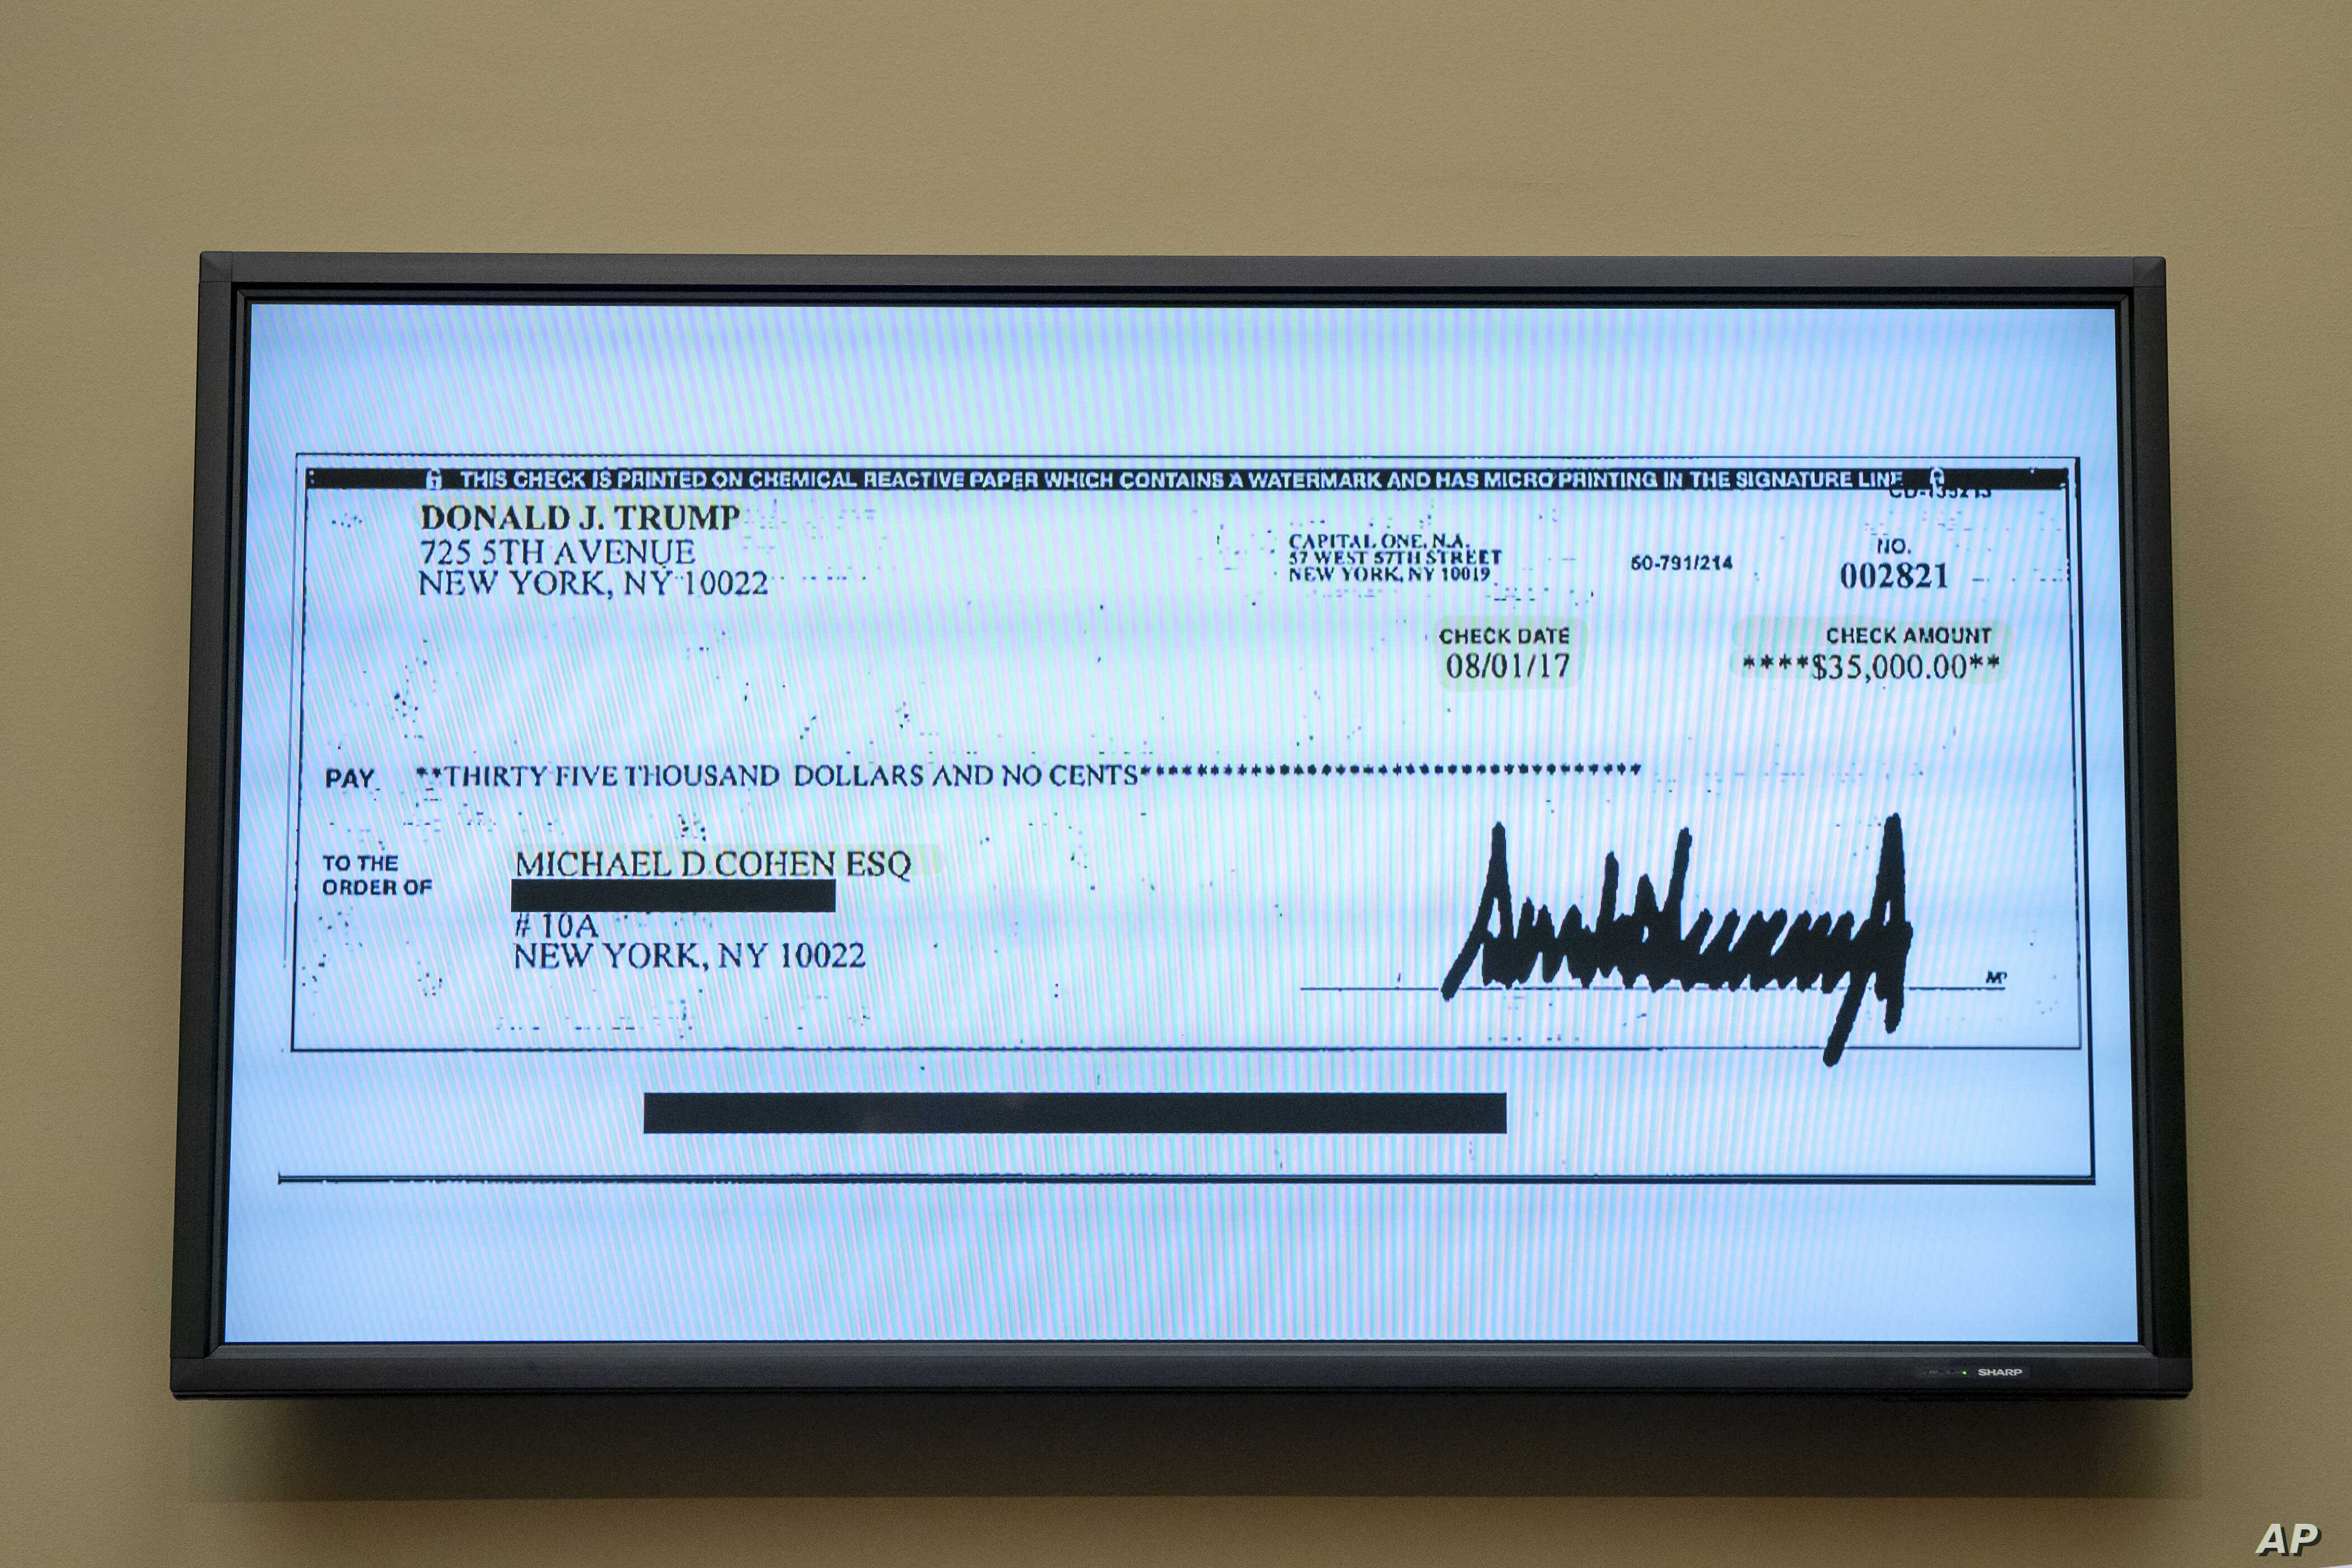 A copy of a check from Donald Trump to Michael Cohen, his former personal lawyer, is displayed as he testifies before the House Oversight and Reform Committee on Capitol Hill in Washington, Feb. 27, 2019.